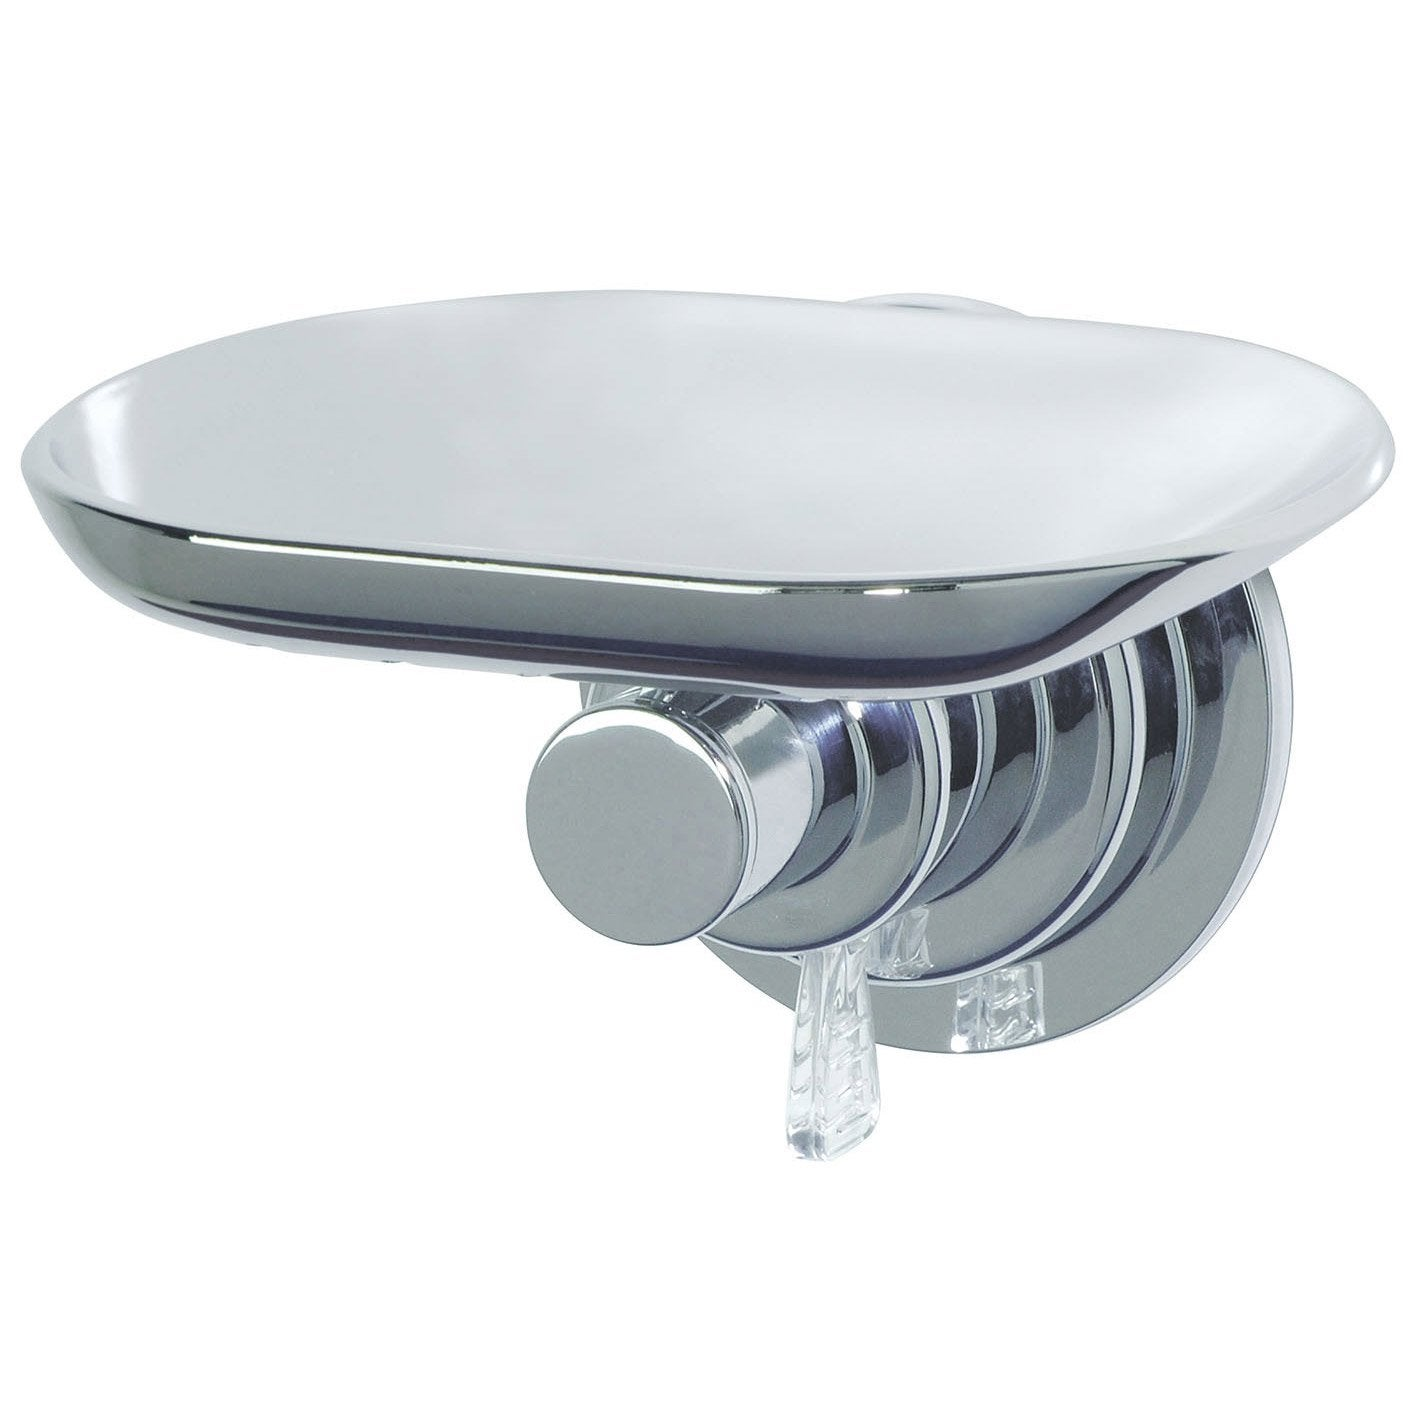 Porte savon chrome a ventouses leroy merlin for Distributeur savon douche mural